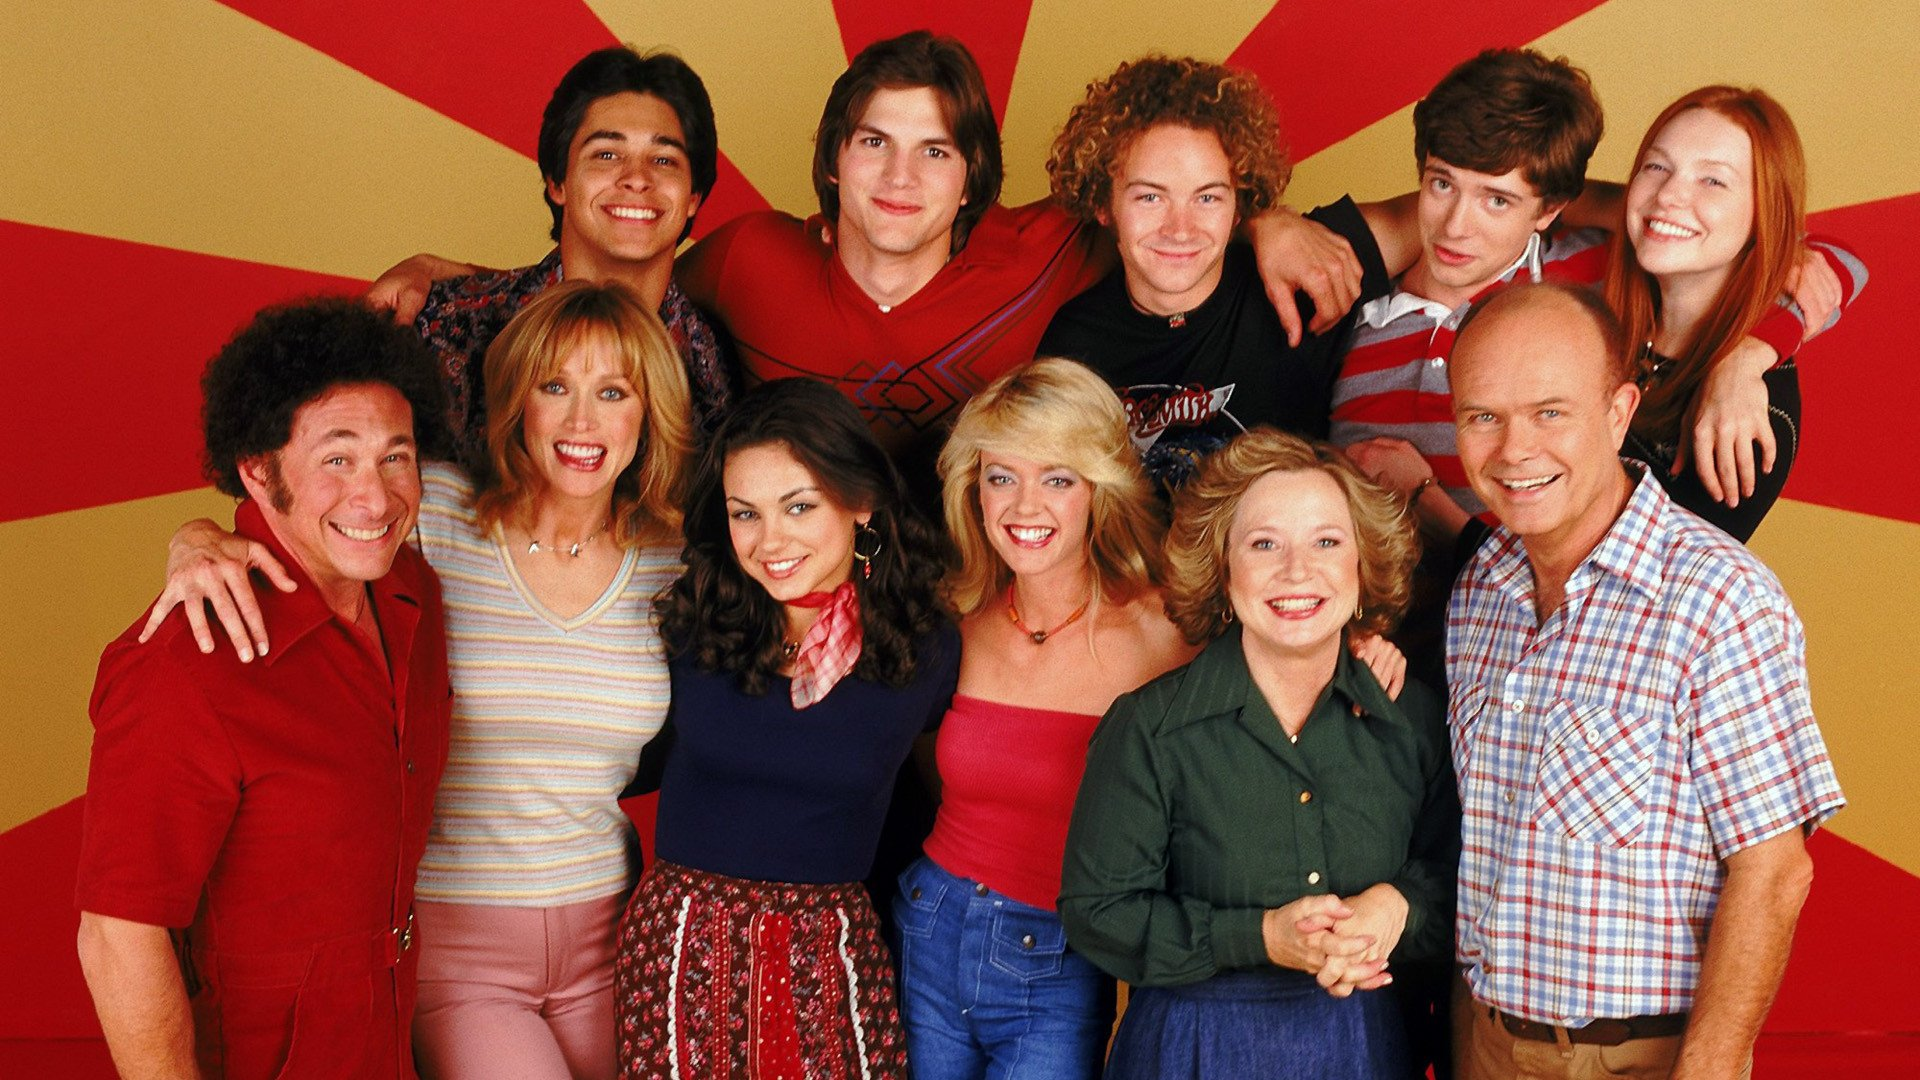 Wallpapers Id - - Thats 70s Show Cast , HD Wallpaper & Backgrounds